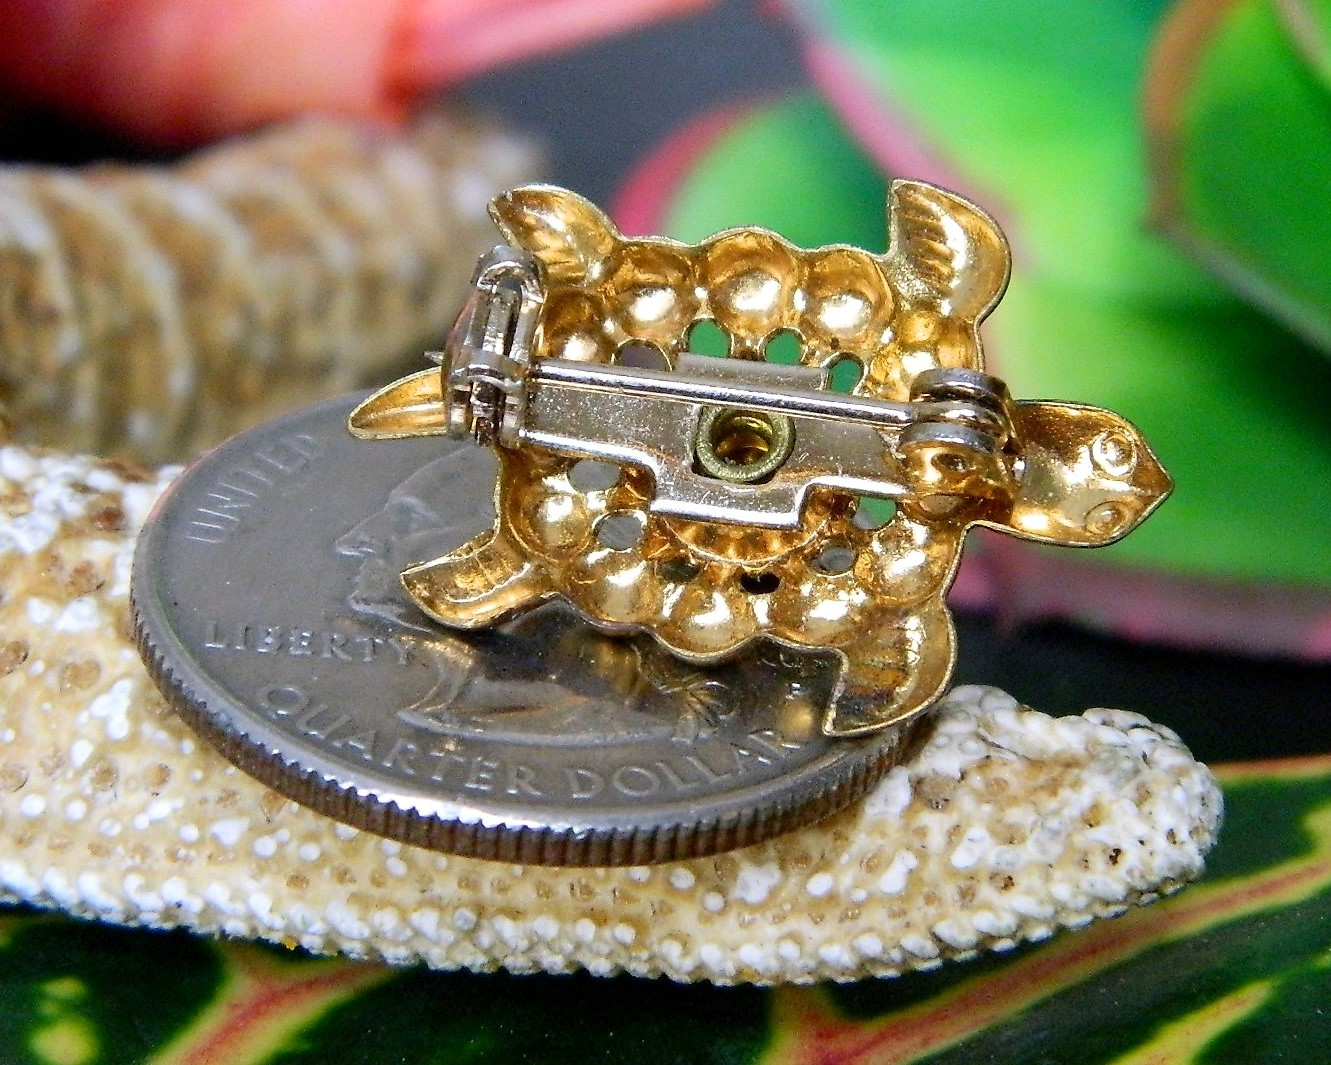 Vintage Sea Turtle Tortoise Flippers Tiny Figural Brooch Pin Gold Tone image 3